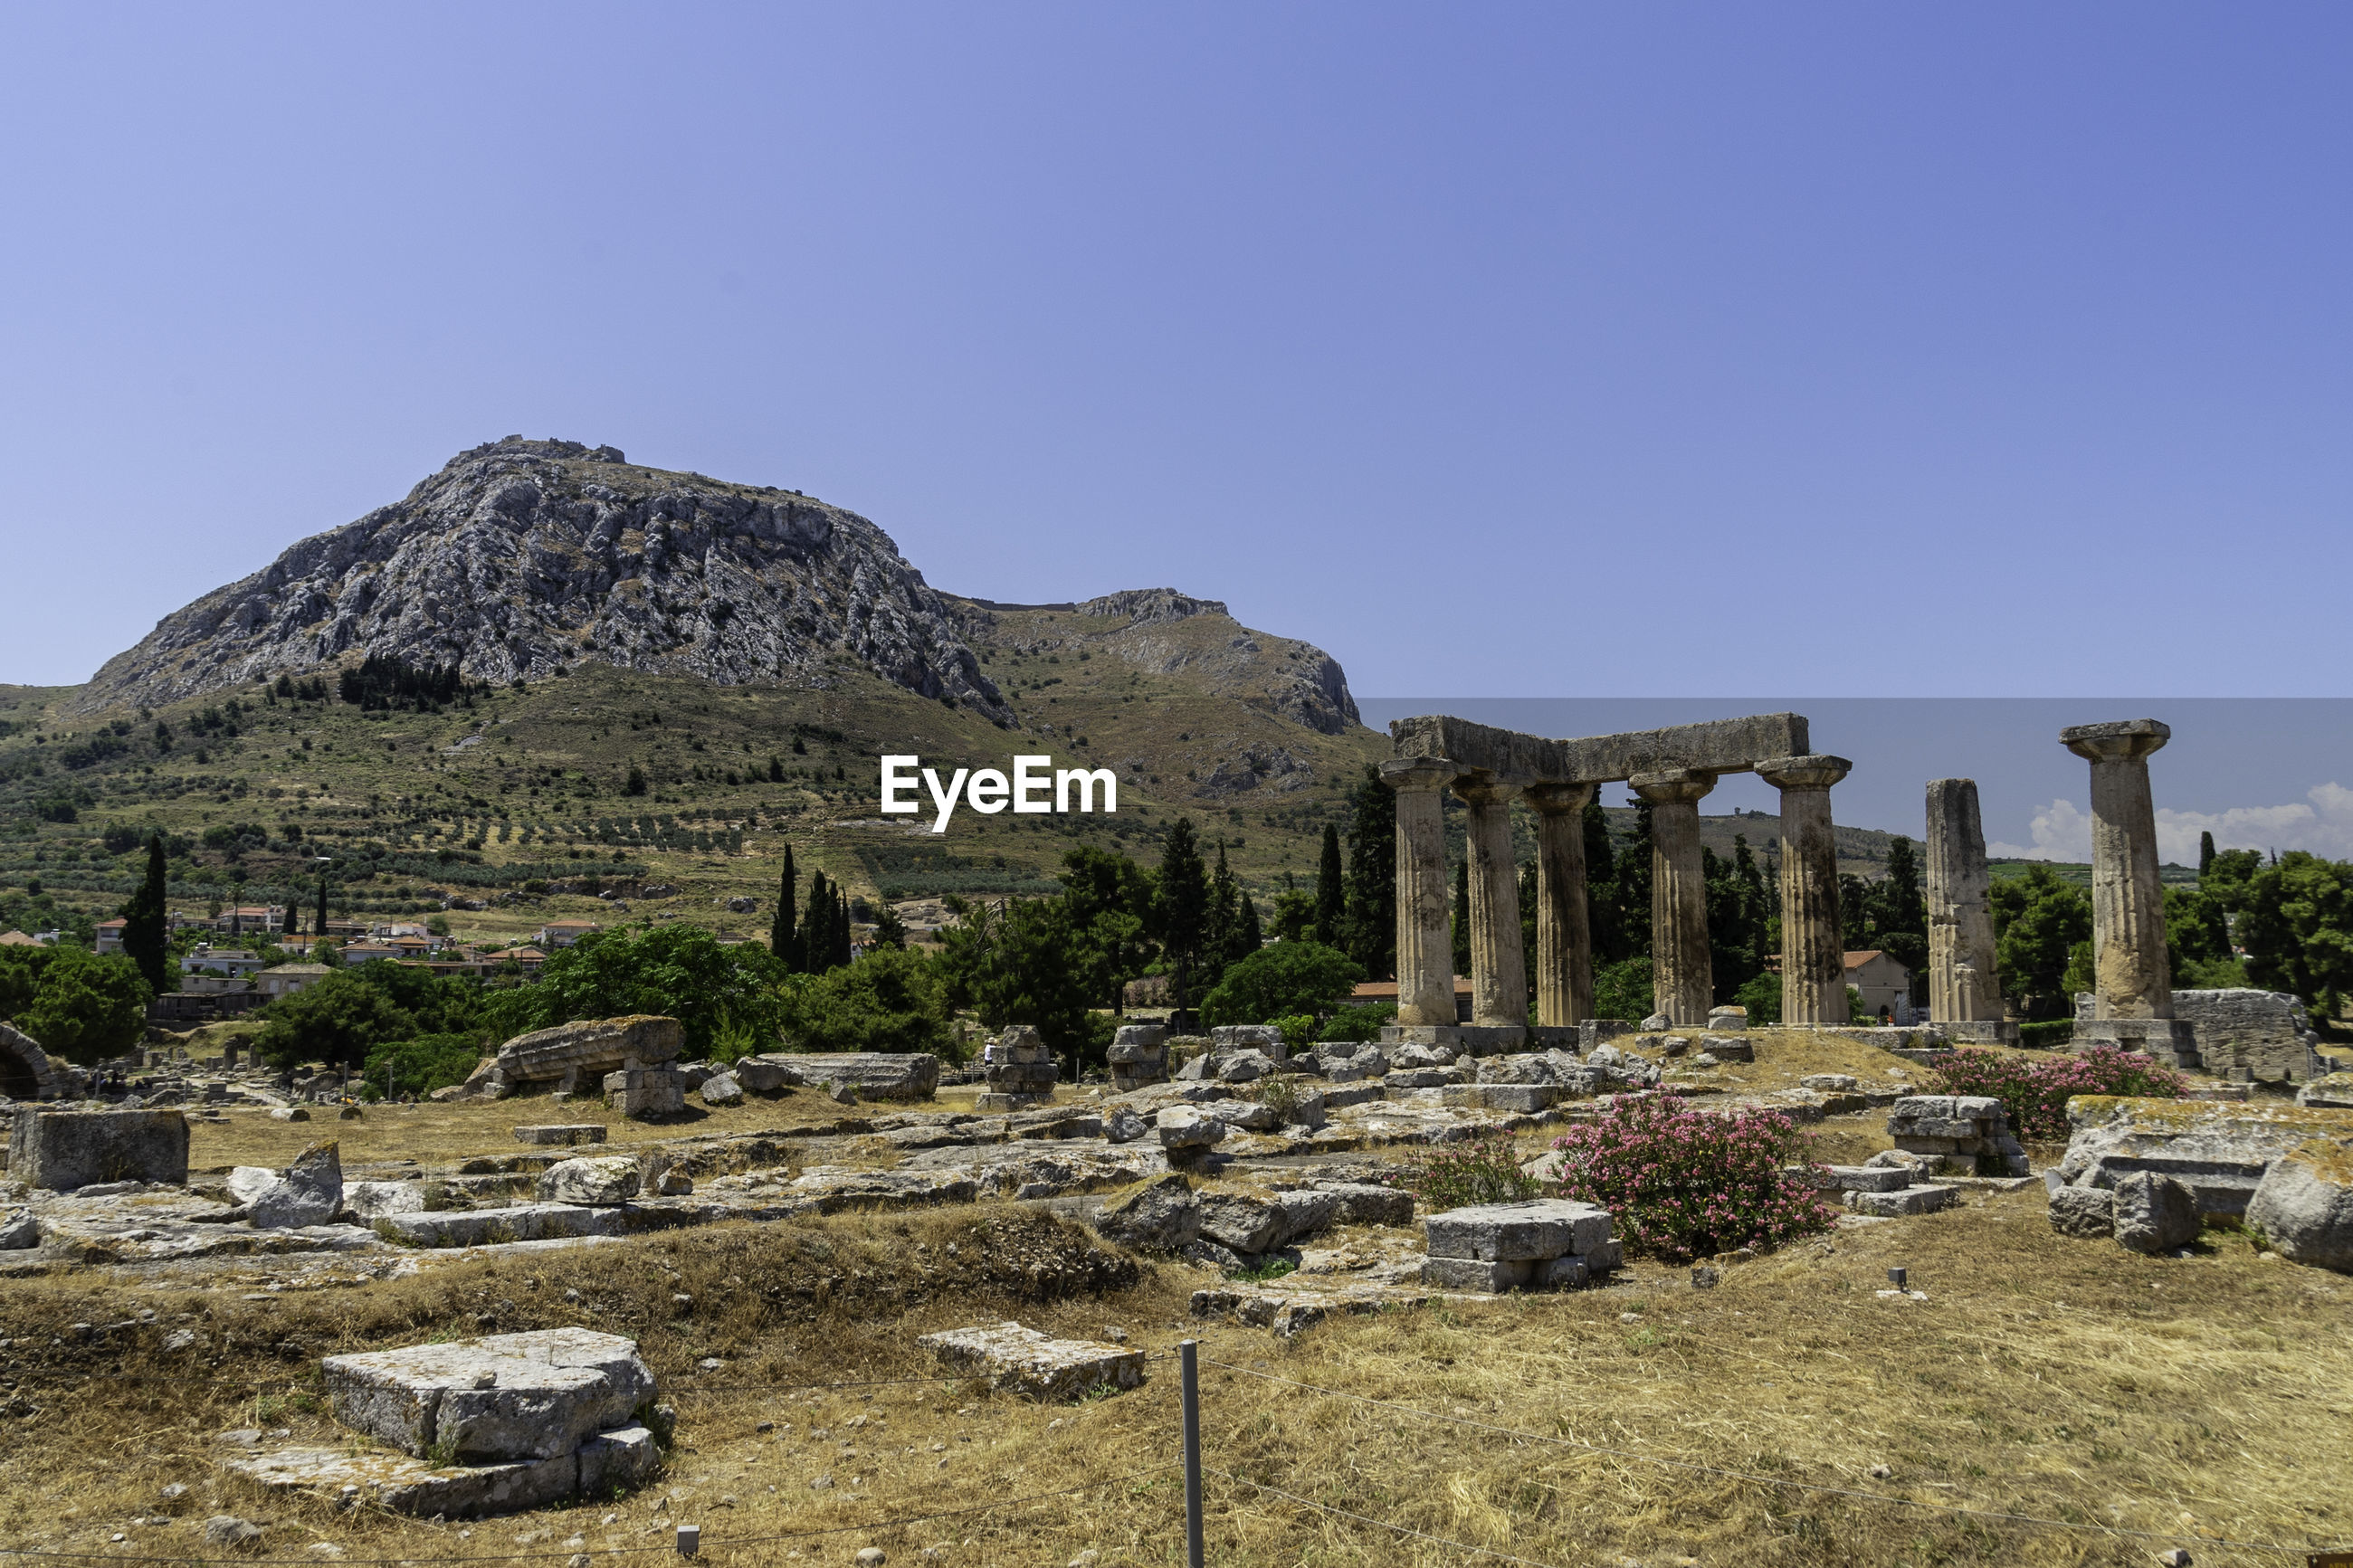 Ruins of ancient apollo temple in front of acrocorinth in front of blue sky